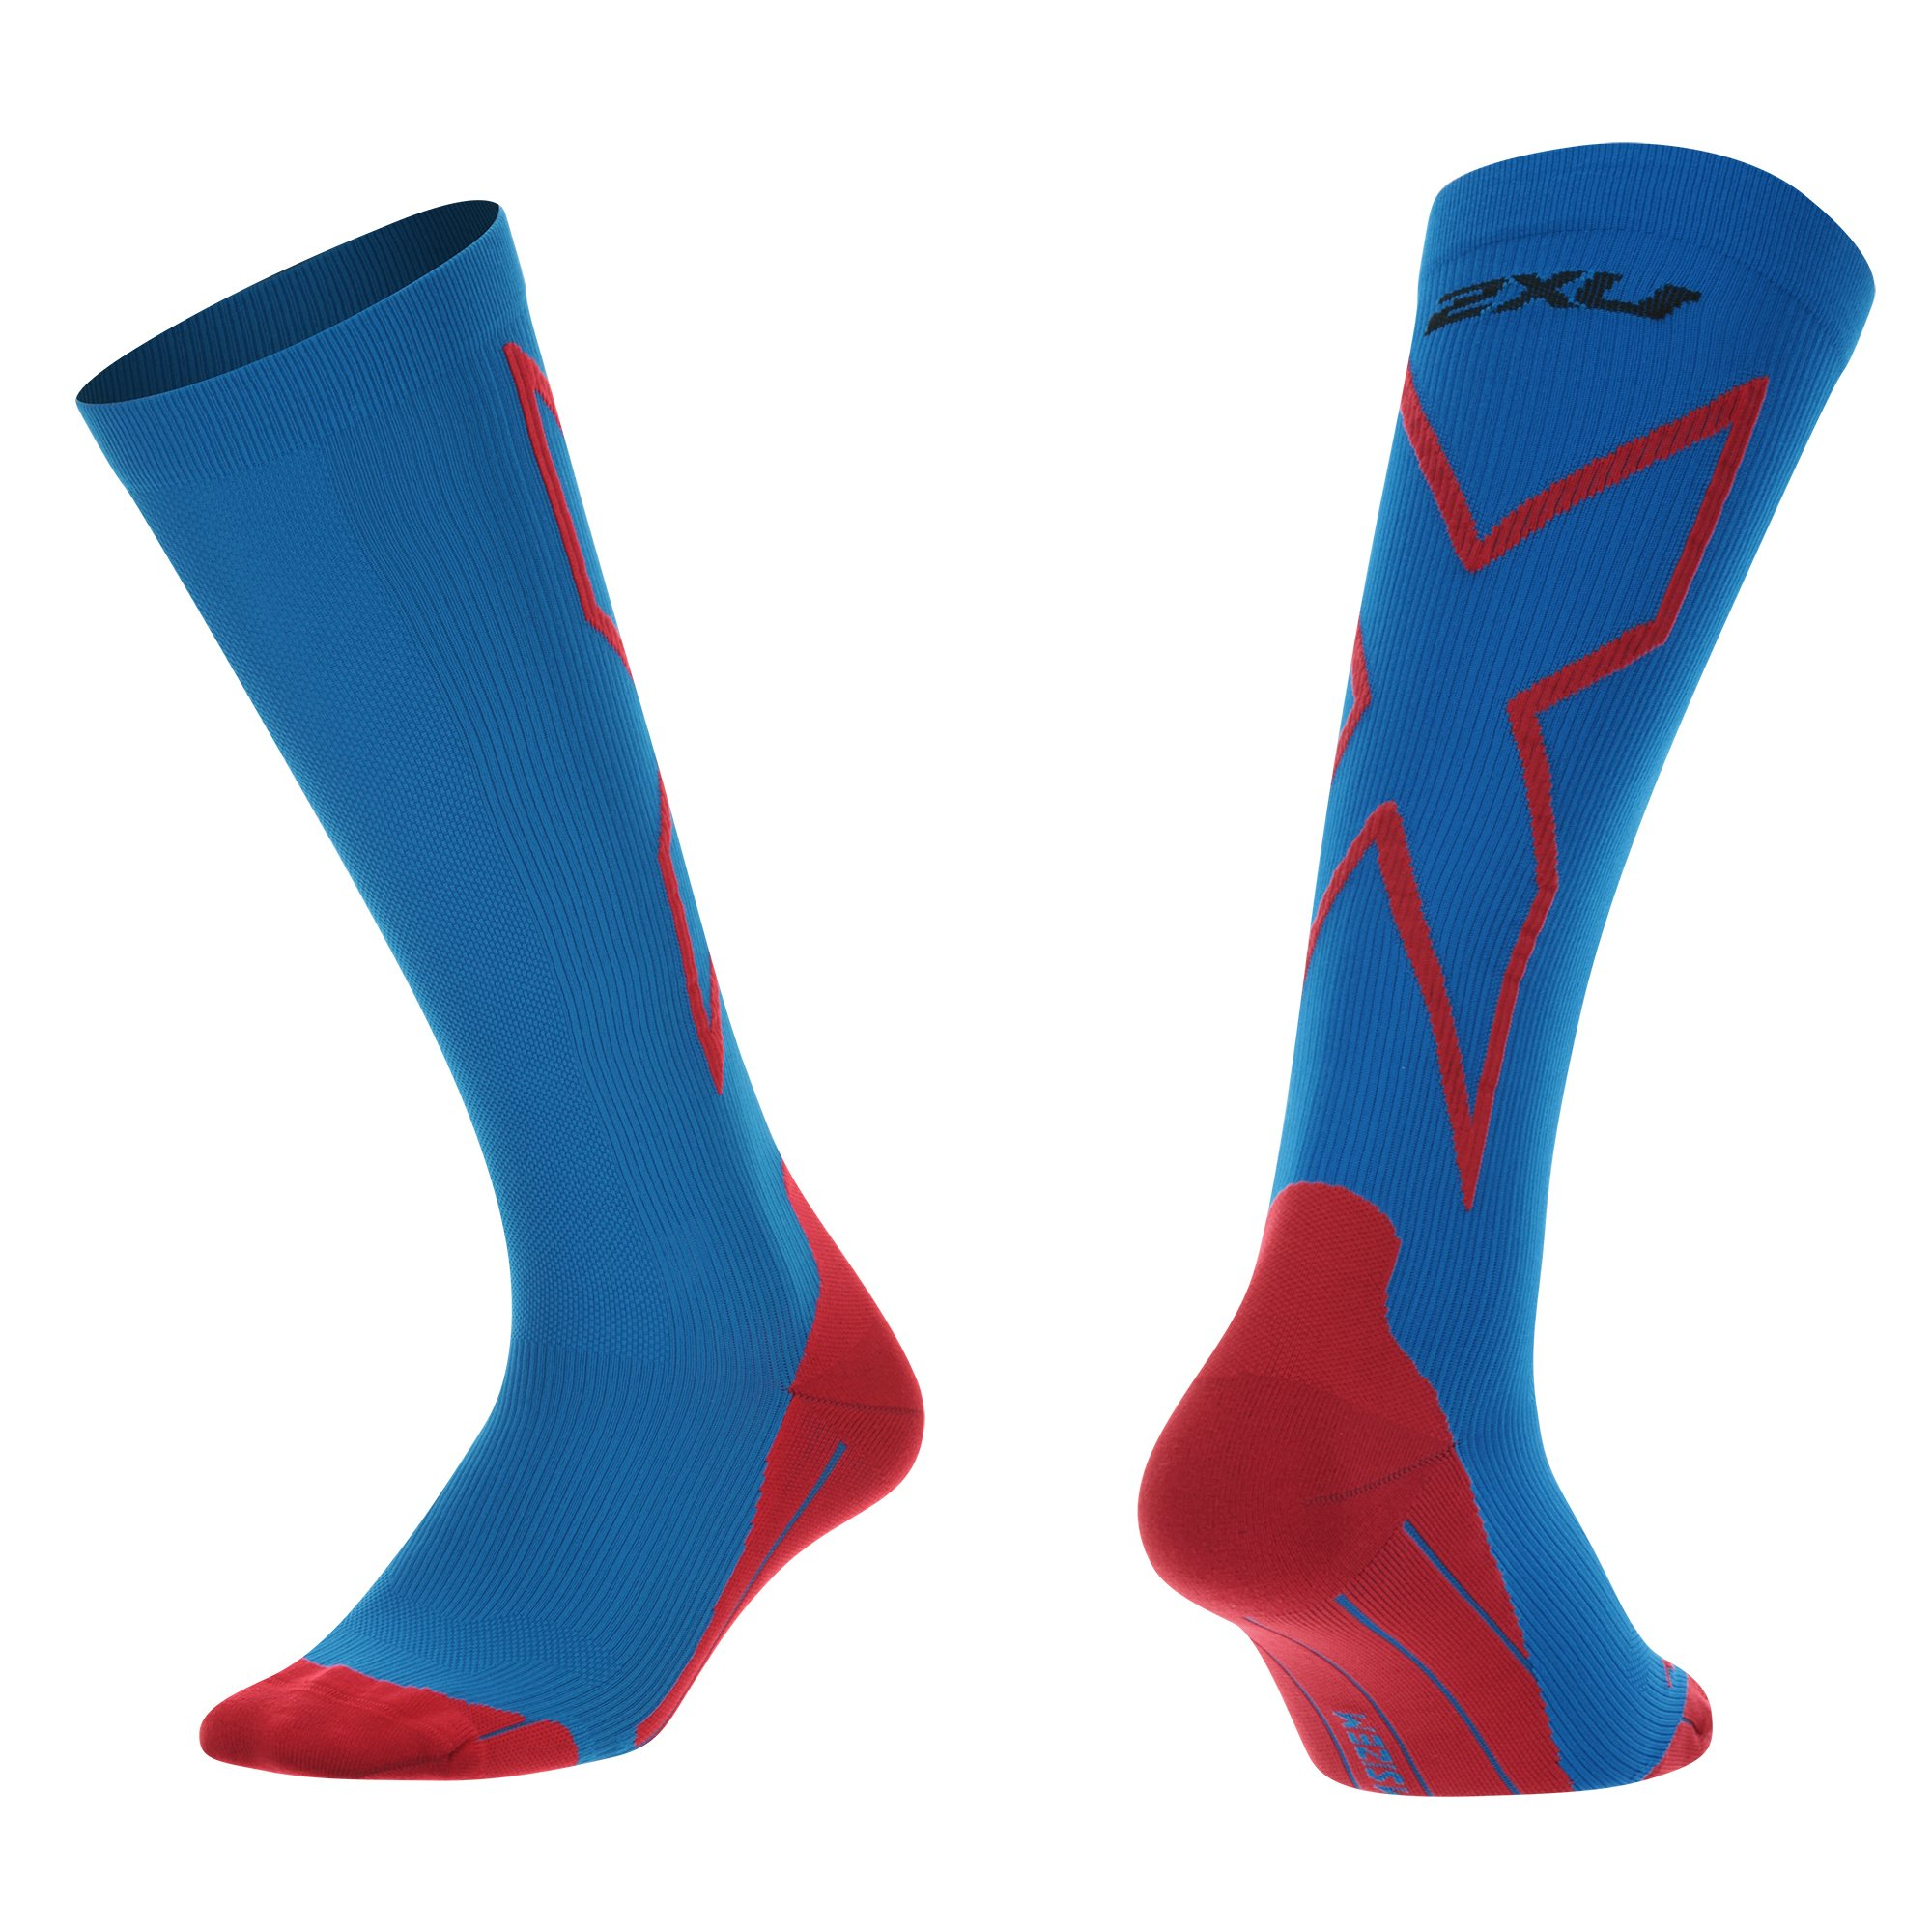 2XU Mens Compression performance X socks, Vibrant Blue/Red, X-Large